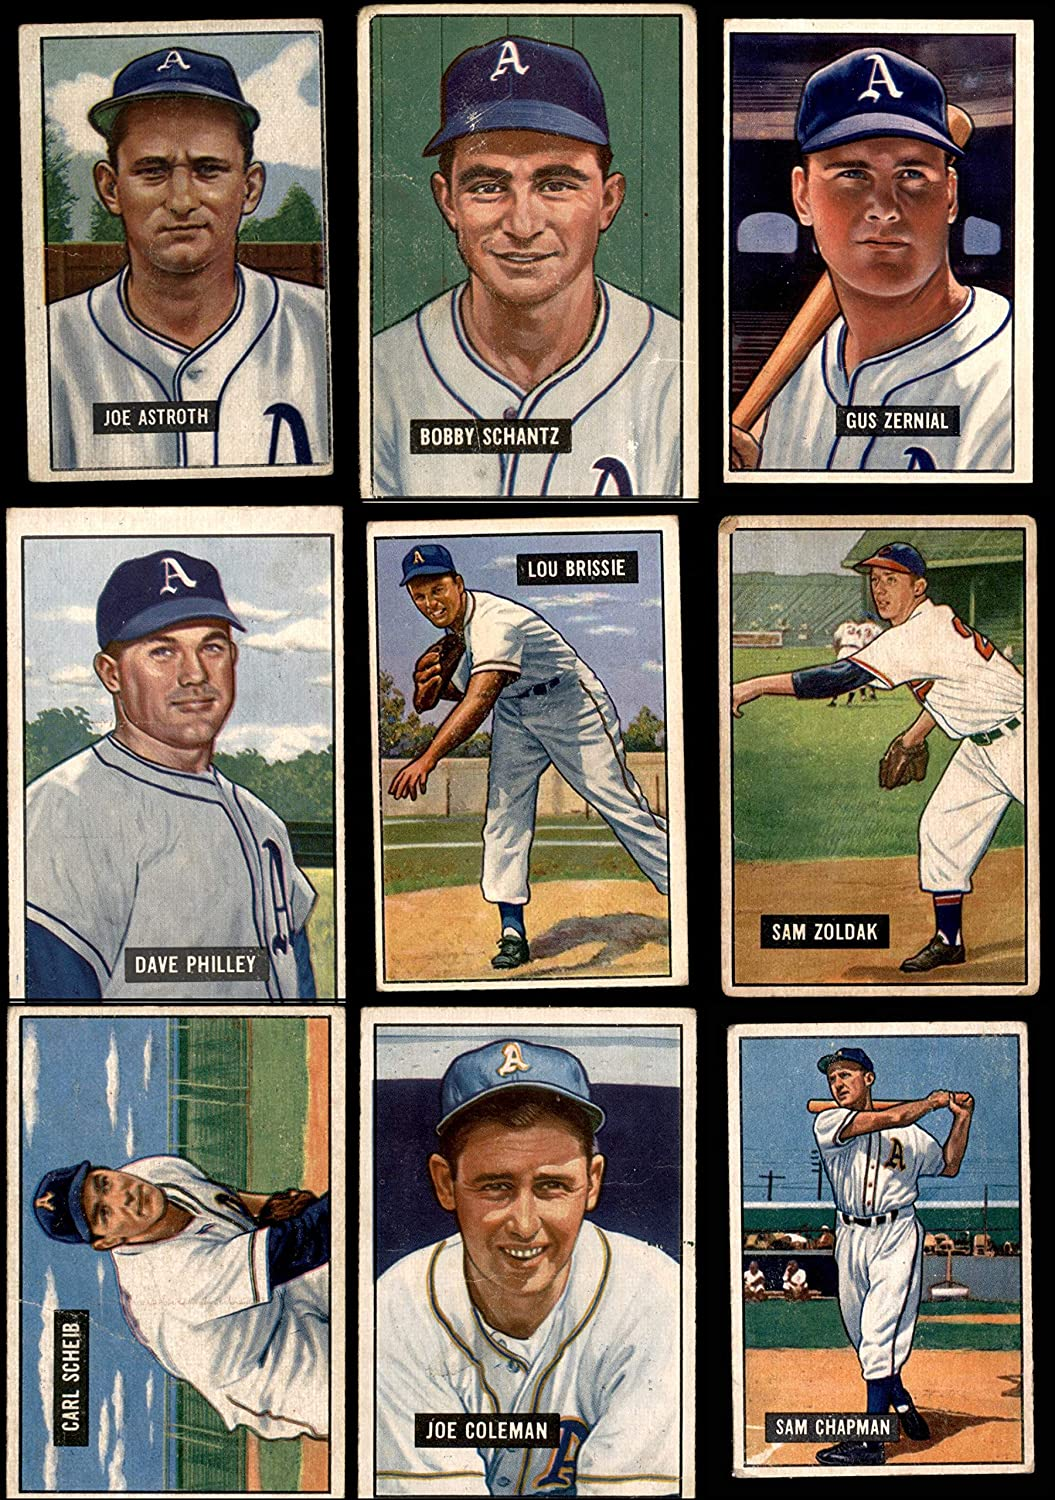 1951 Bowman Philadelphia Athletics (A's) Team Set Philadelphia Athletics (Baseball Set) Dean's Cards 2 - GOOD Athletics 91WKztcQBKLSL1500_